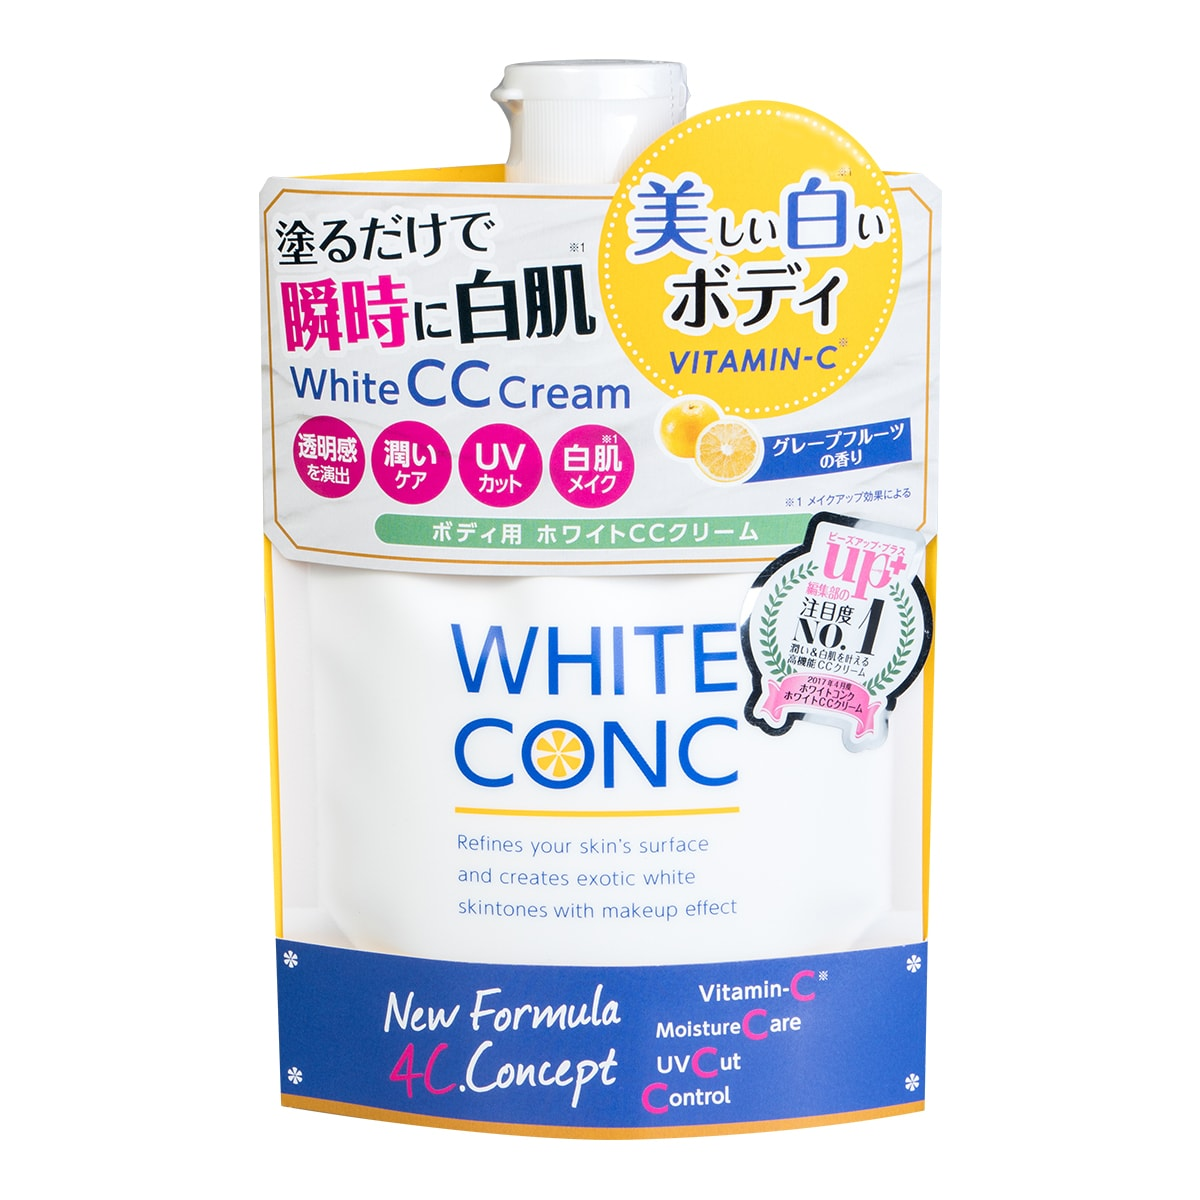 WHITE CONC White CC Cream